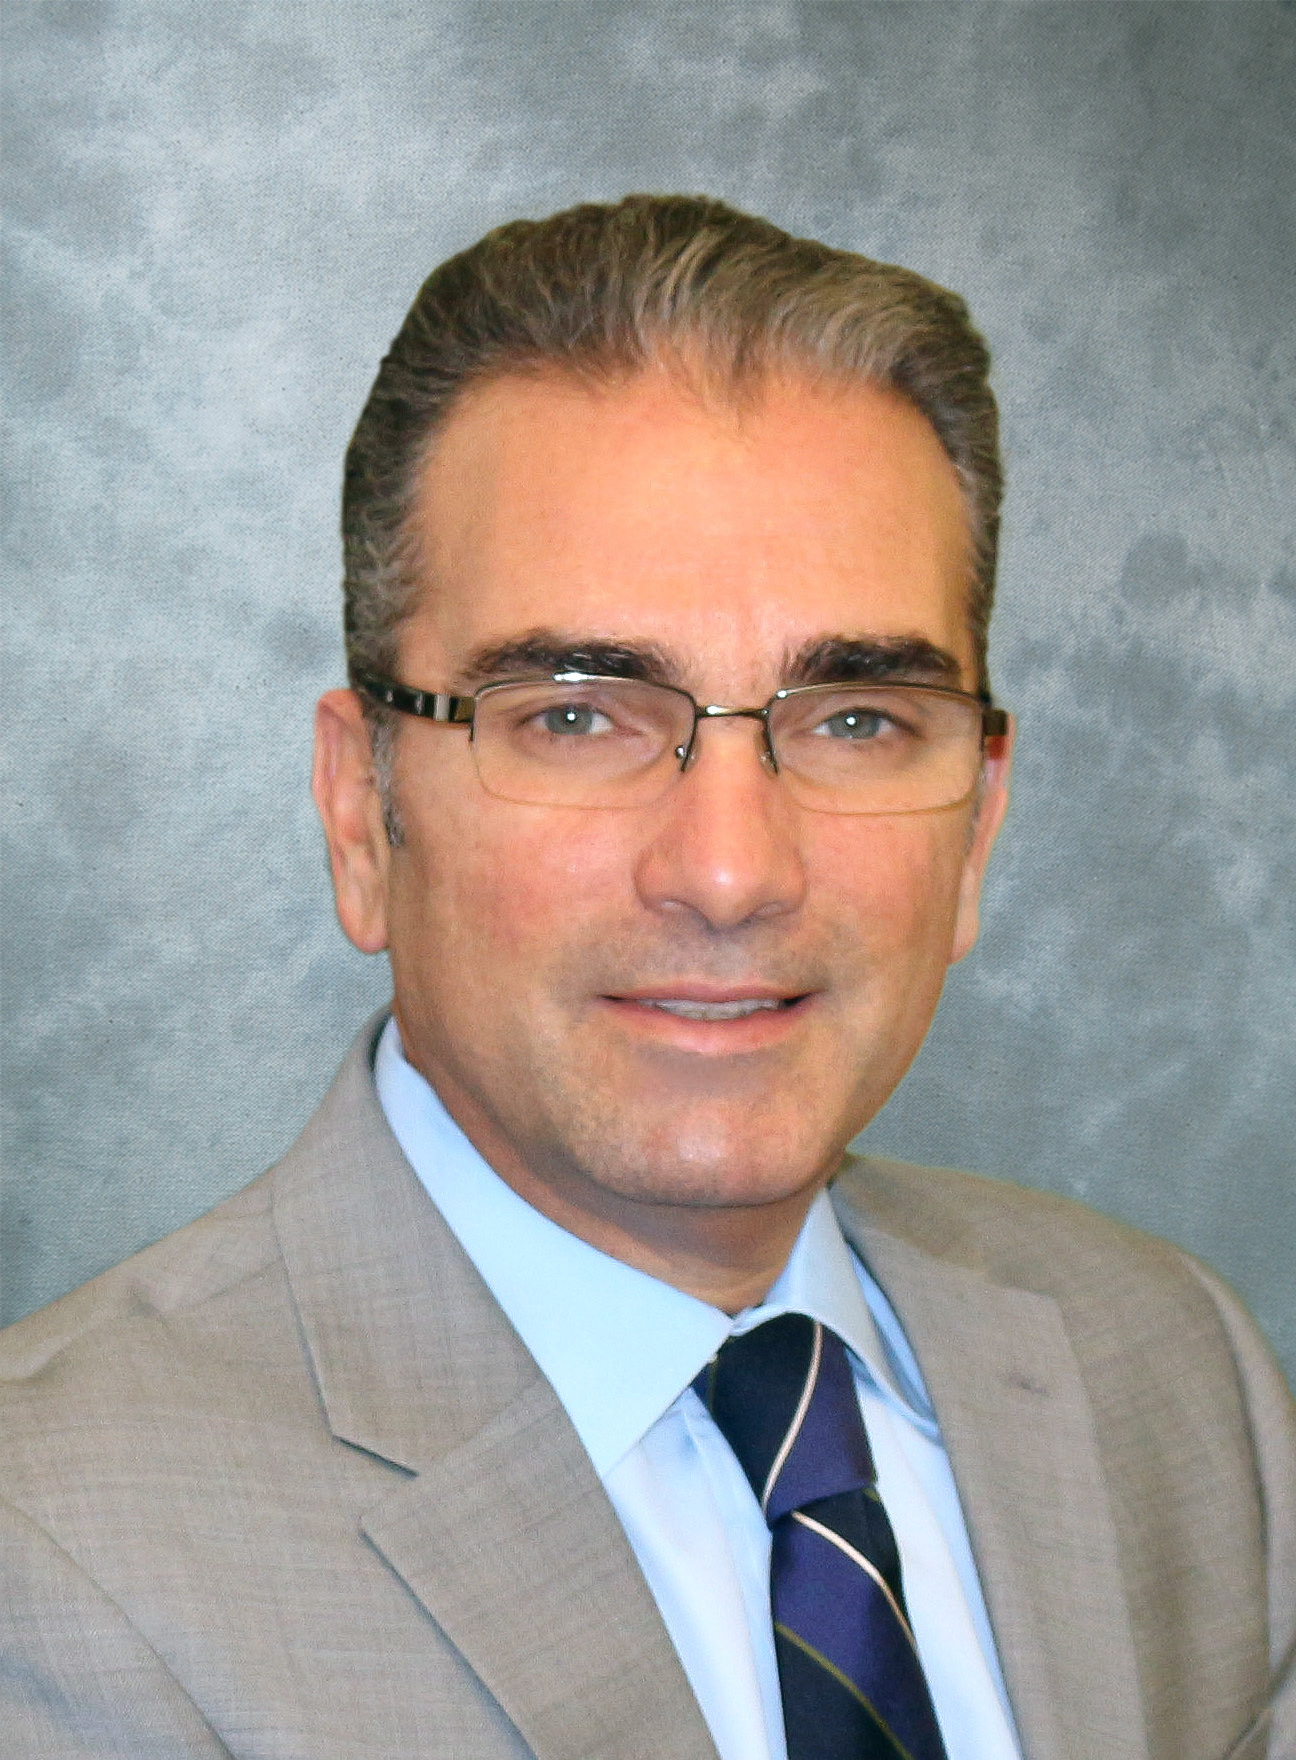 Mark Dazzo, Vice President, Global Marketing and Sales of Church Publishing Incorporated (CPI) will succeed Davis Perkins as Senior Vice President and Publisher of CPI effective April 1, 2017.